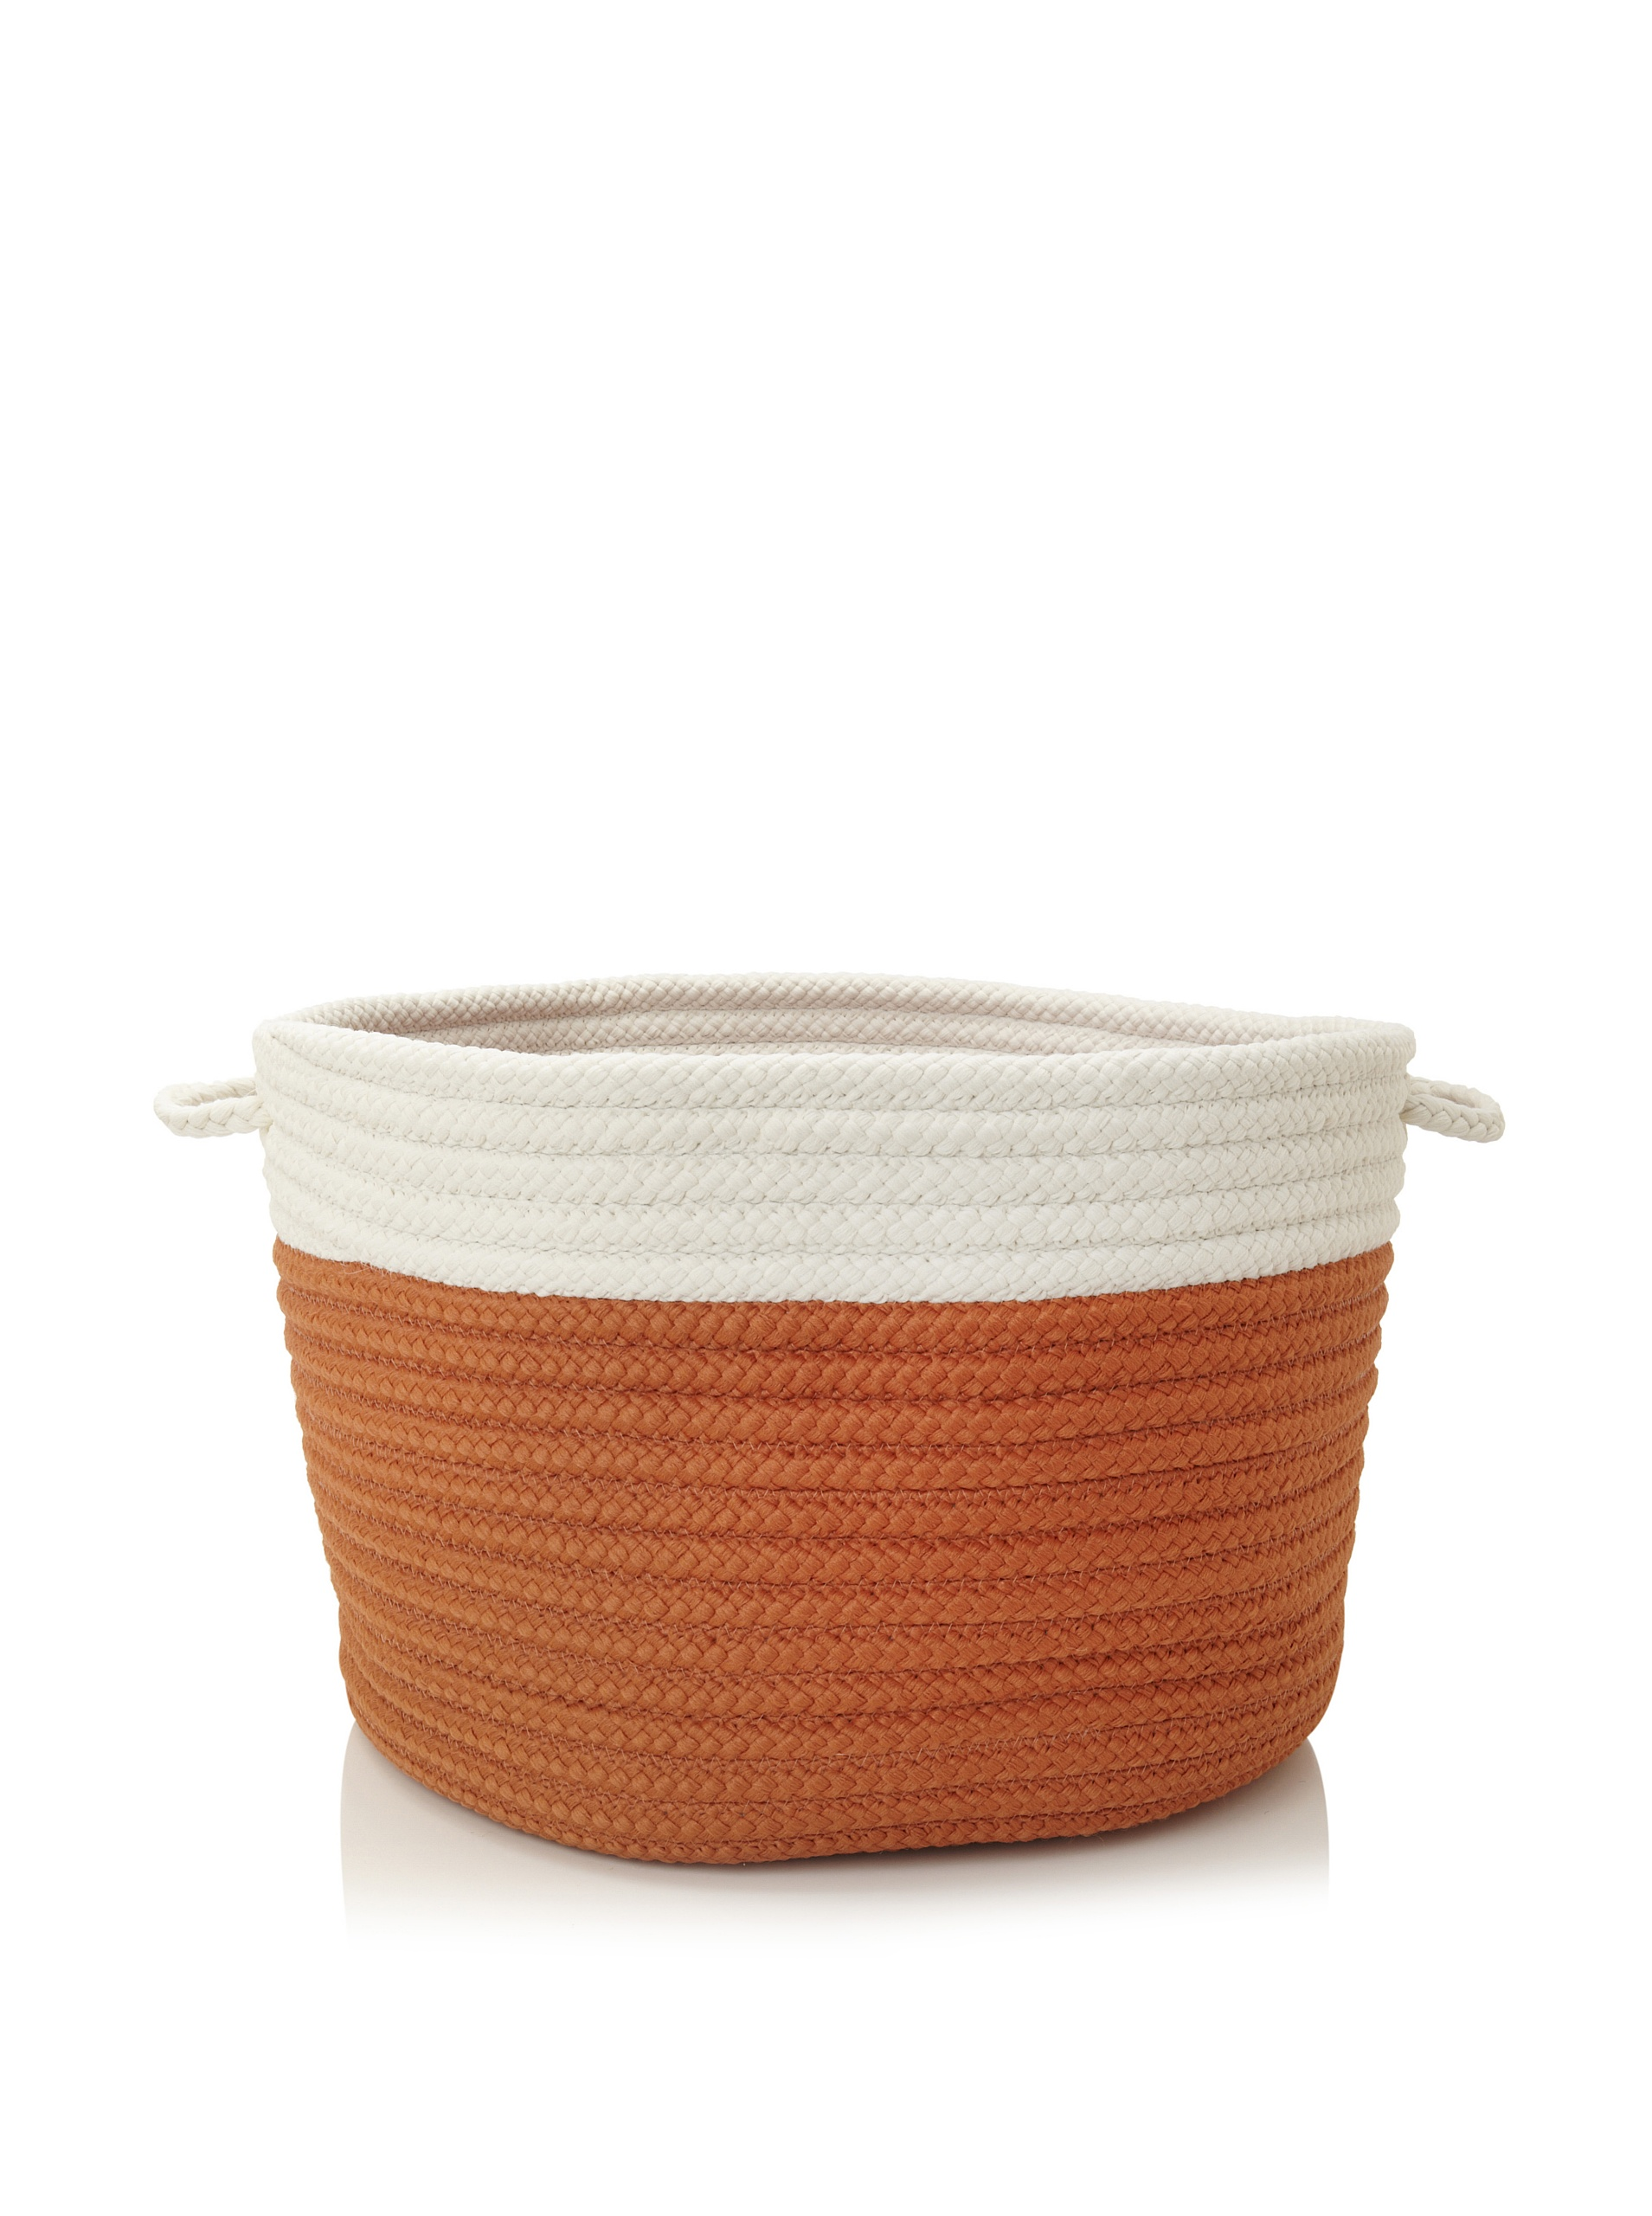 Colonial Mills Indoor/Outdoor Two-Toned Storage Basket, Orange - Stain/Fade Resistant Two Easy-Grip Handles Made in USA - living-room-decor, living-room, baskets-storage - 91GS4P35G3L -